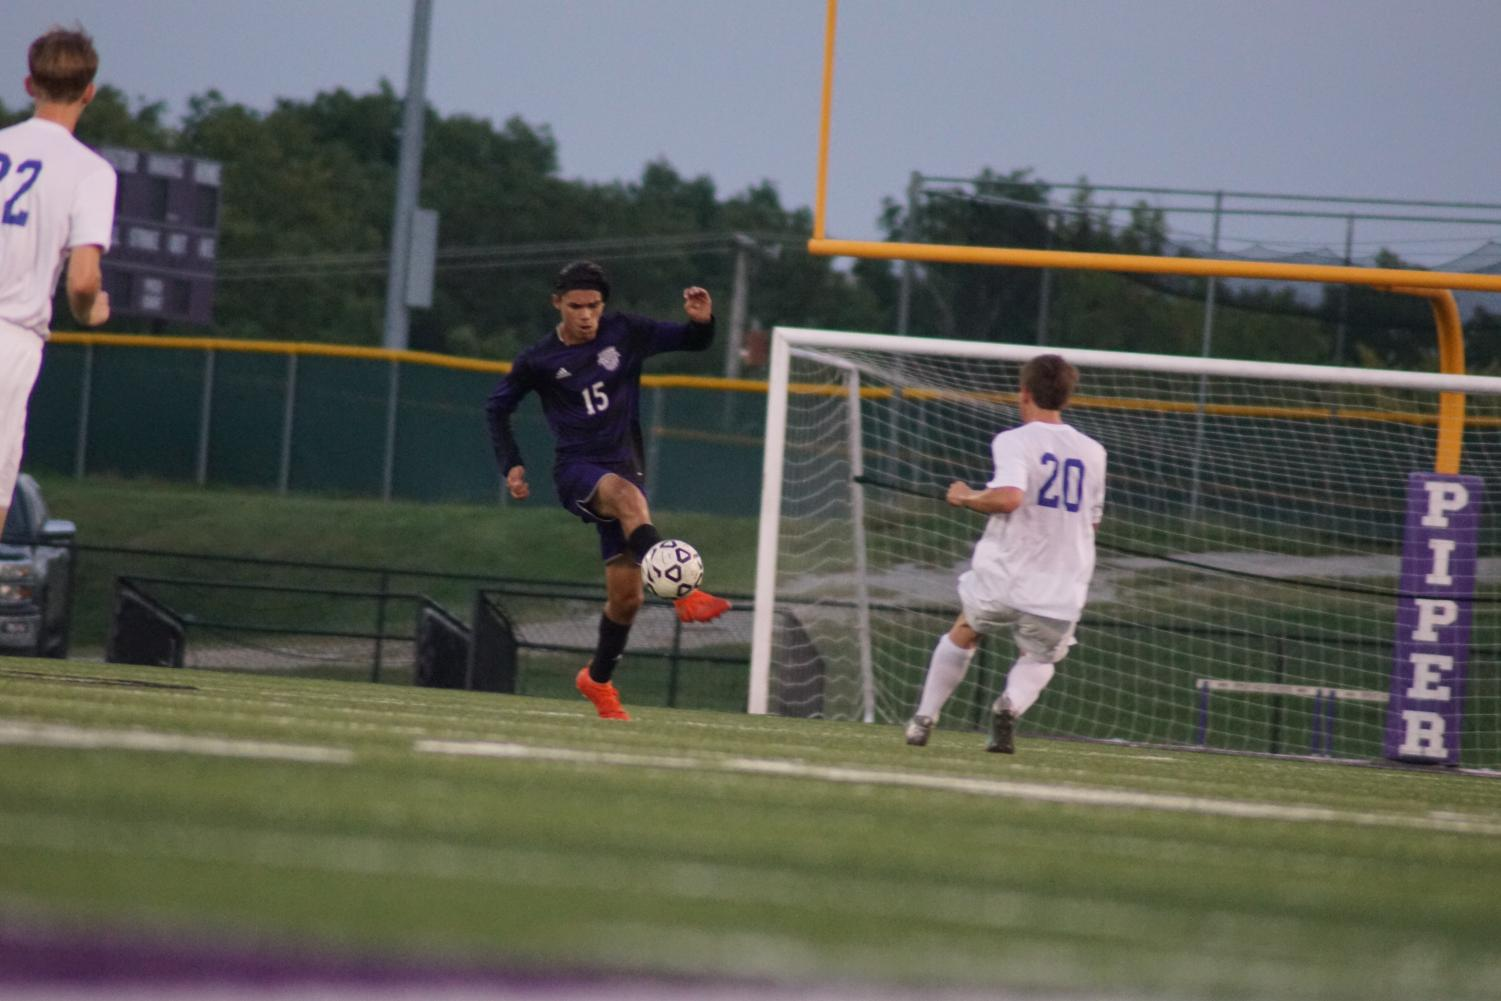 Senior Anthony Montez kicks the ball away from their goal keeping Leavenworth from scoring.